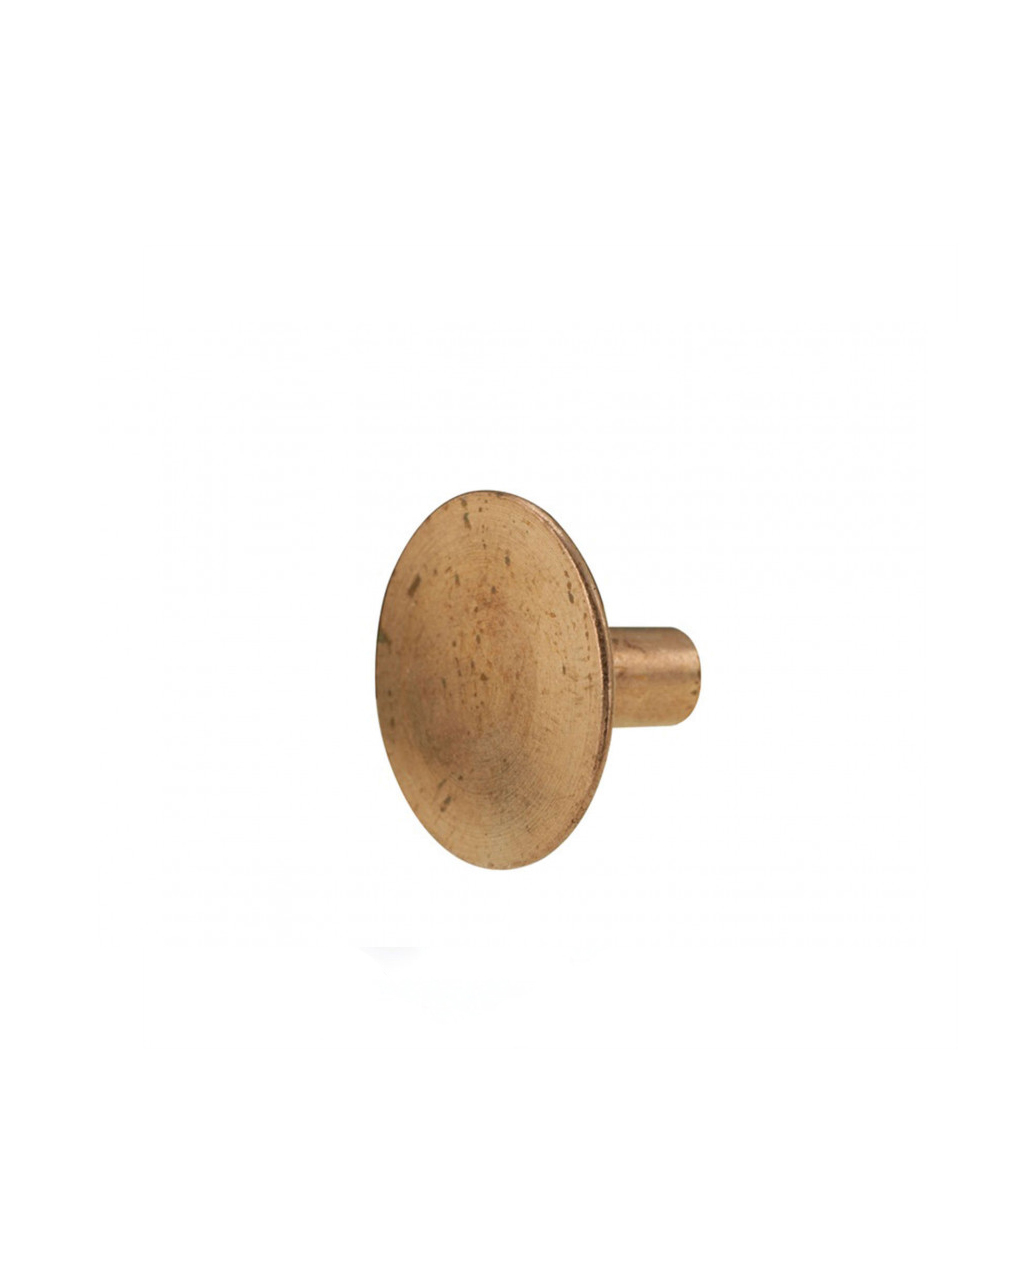 Brooks SOLID COPPER RIVET - LARGE HEAD (16.5 MM DIA) - BYB 273